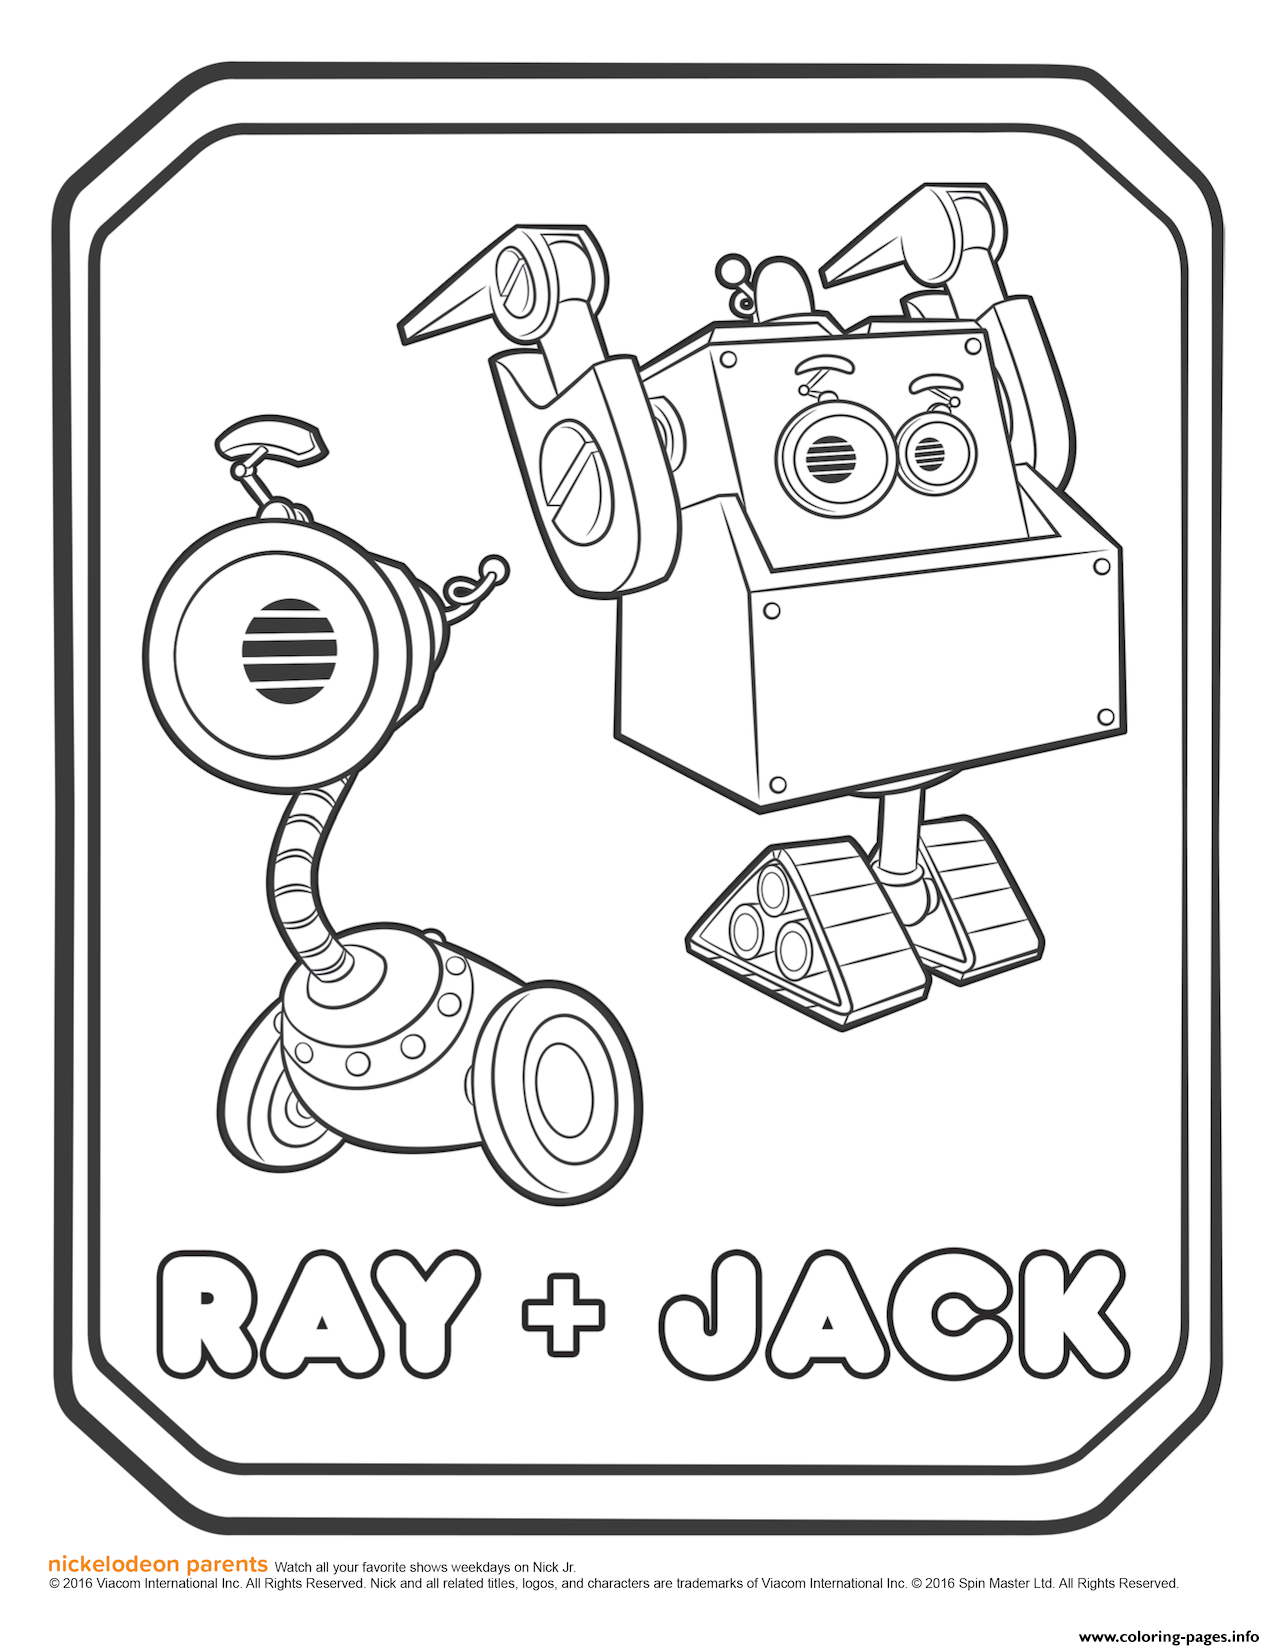 Rusty Rivets Ray And Jack Coloring Page coloring pages